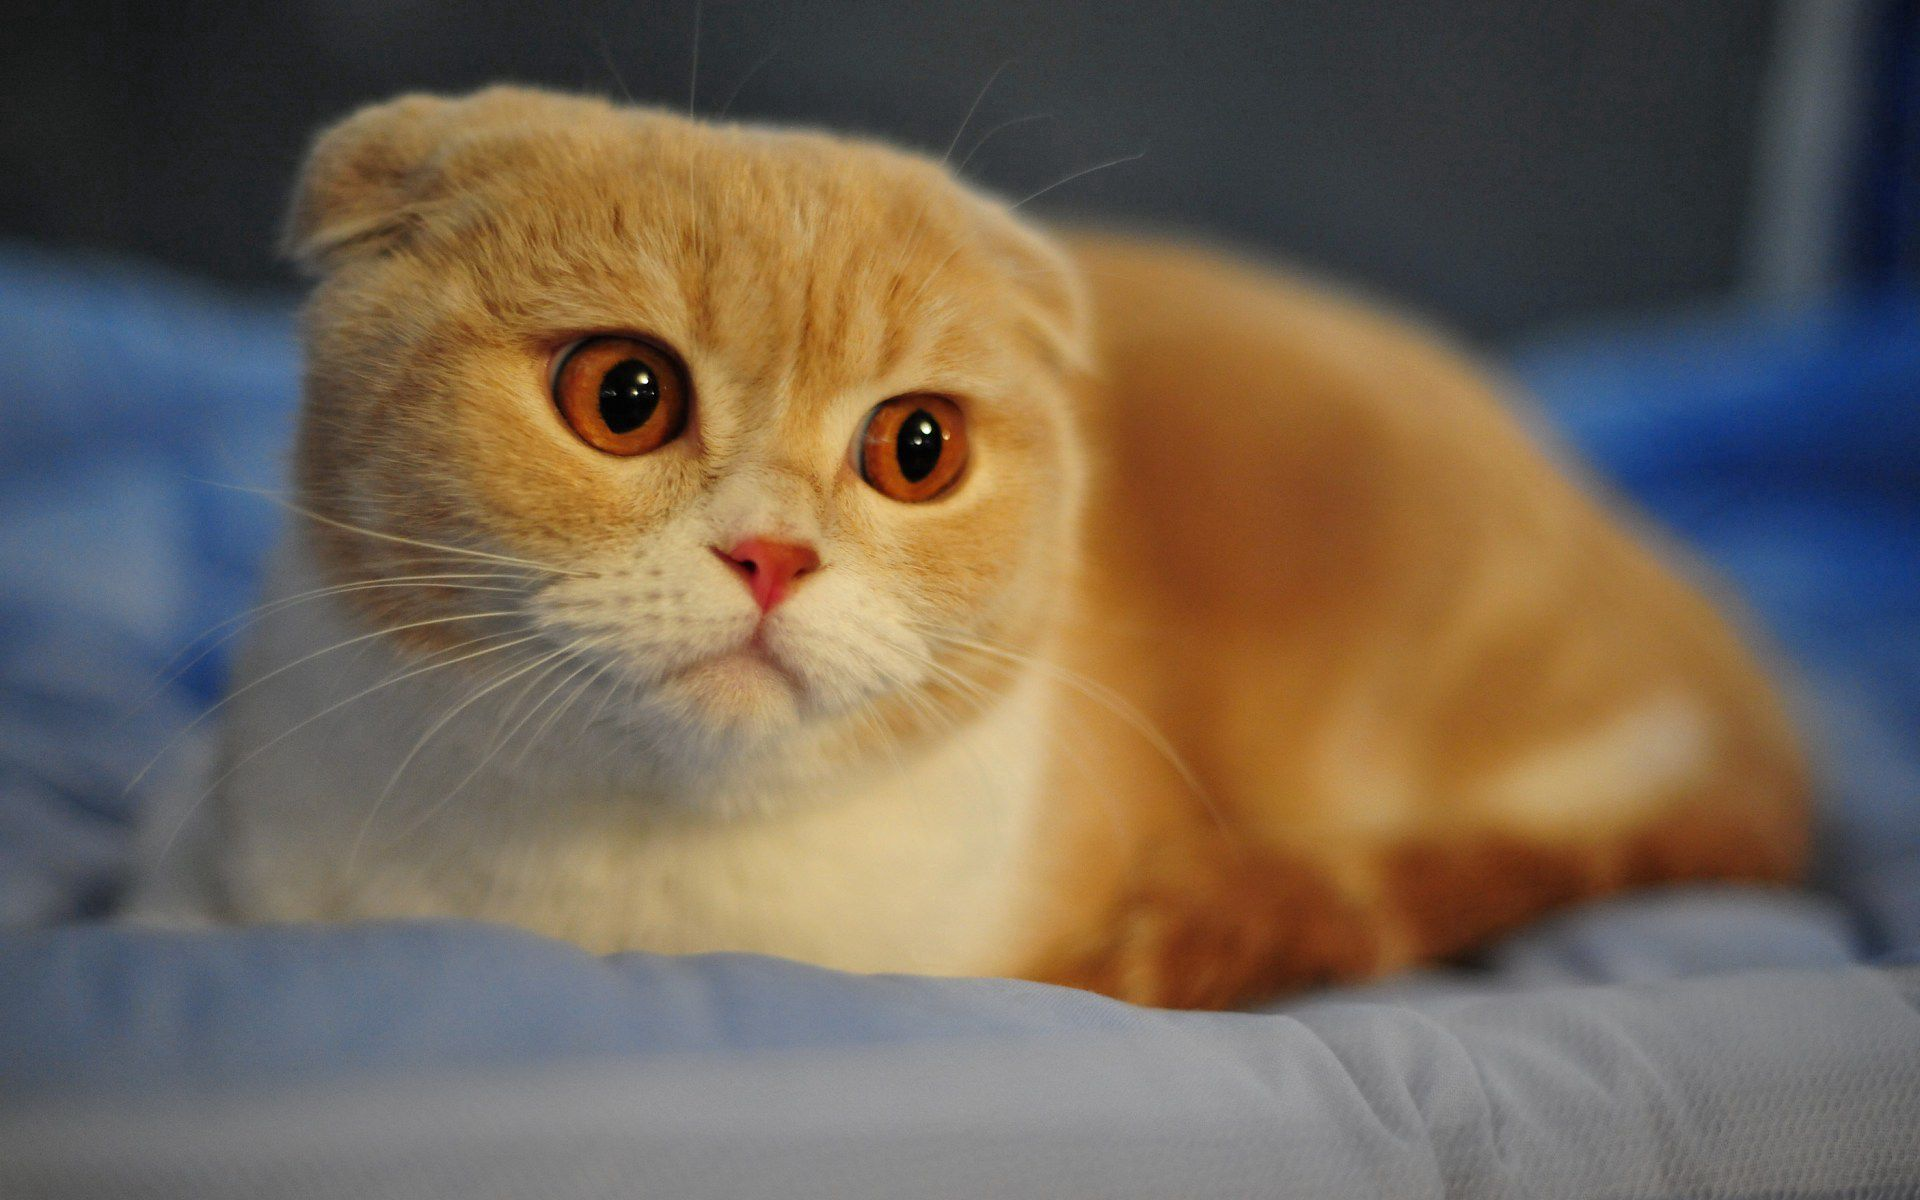 134946 download wallpaper Cat, Animals, Macro, Muzzle, Eyes, Ears, Breed, Nose, Face, Scottish Fold screensavers and pictures for free